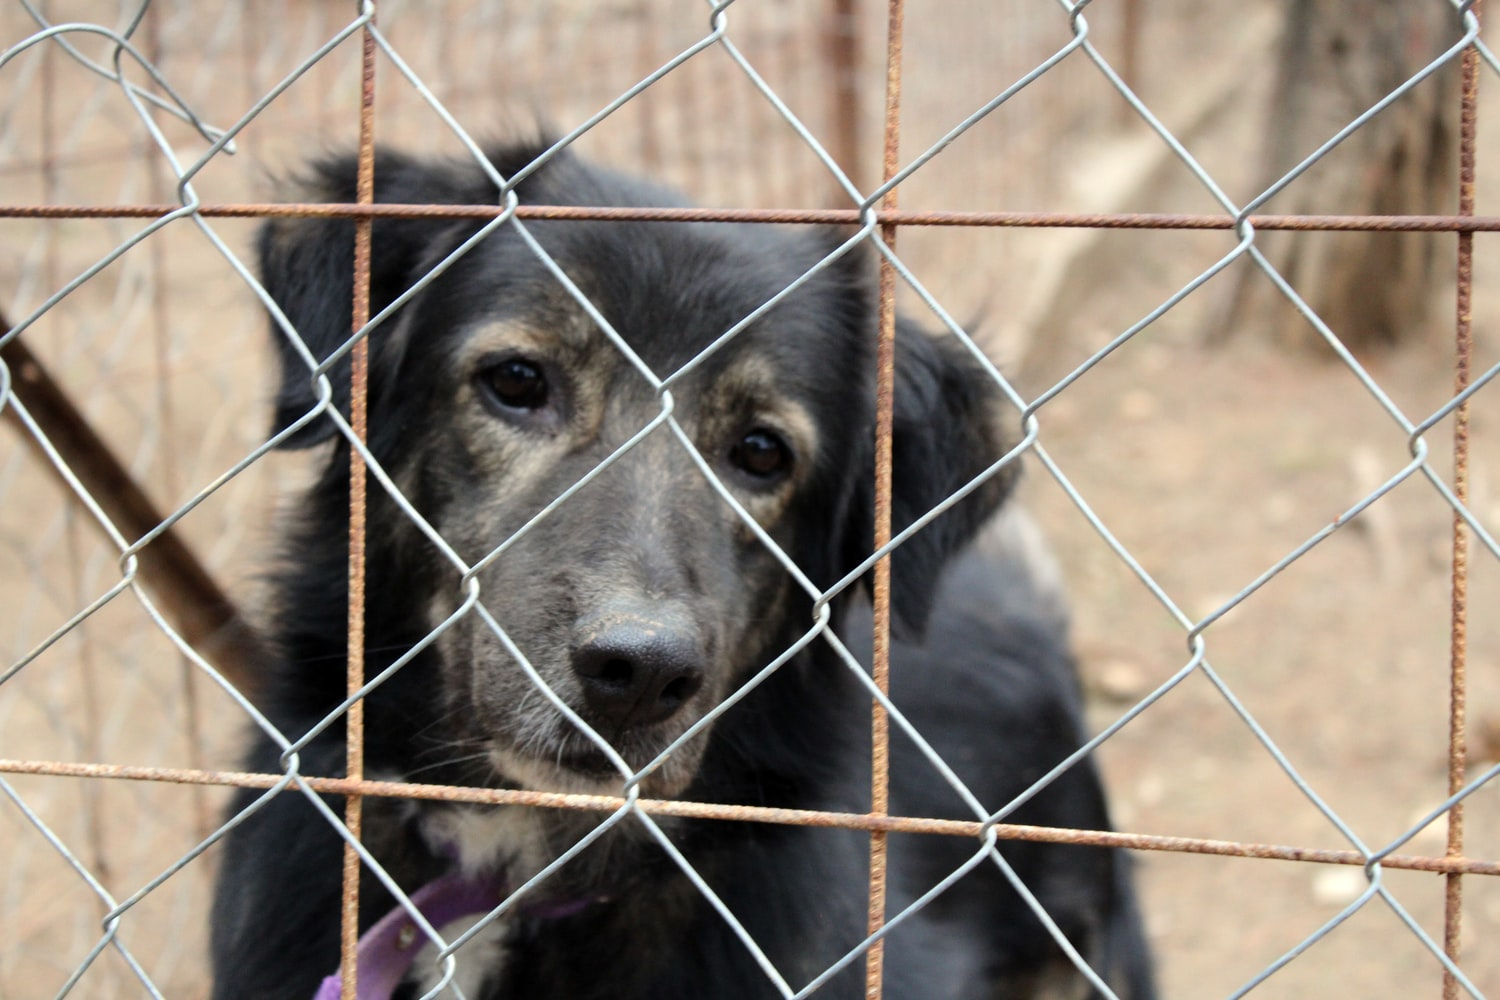 Eleven Iowa dog breeders among the Humane Society's annual 'Horrible Hundred' list